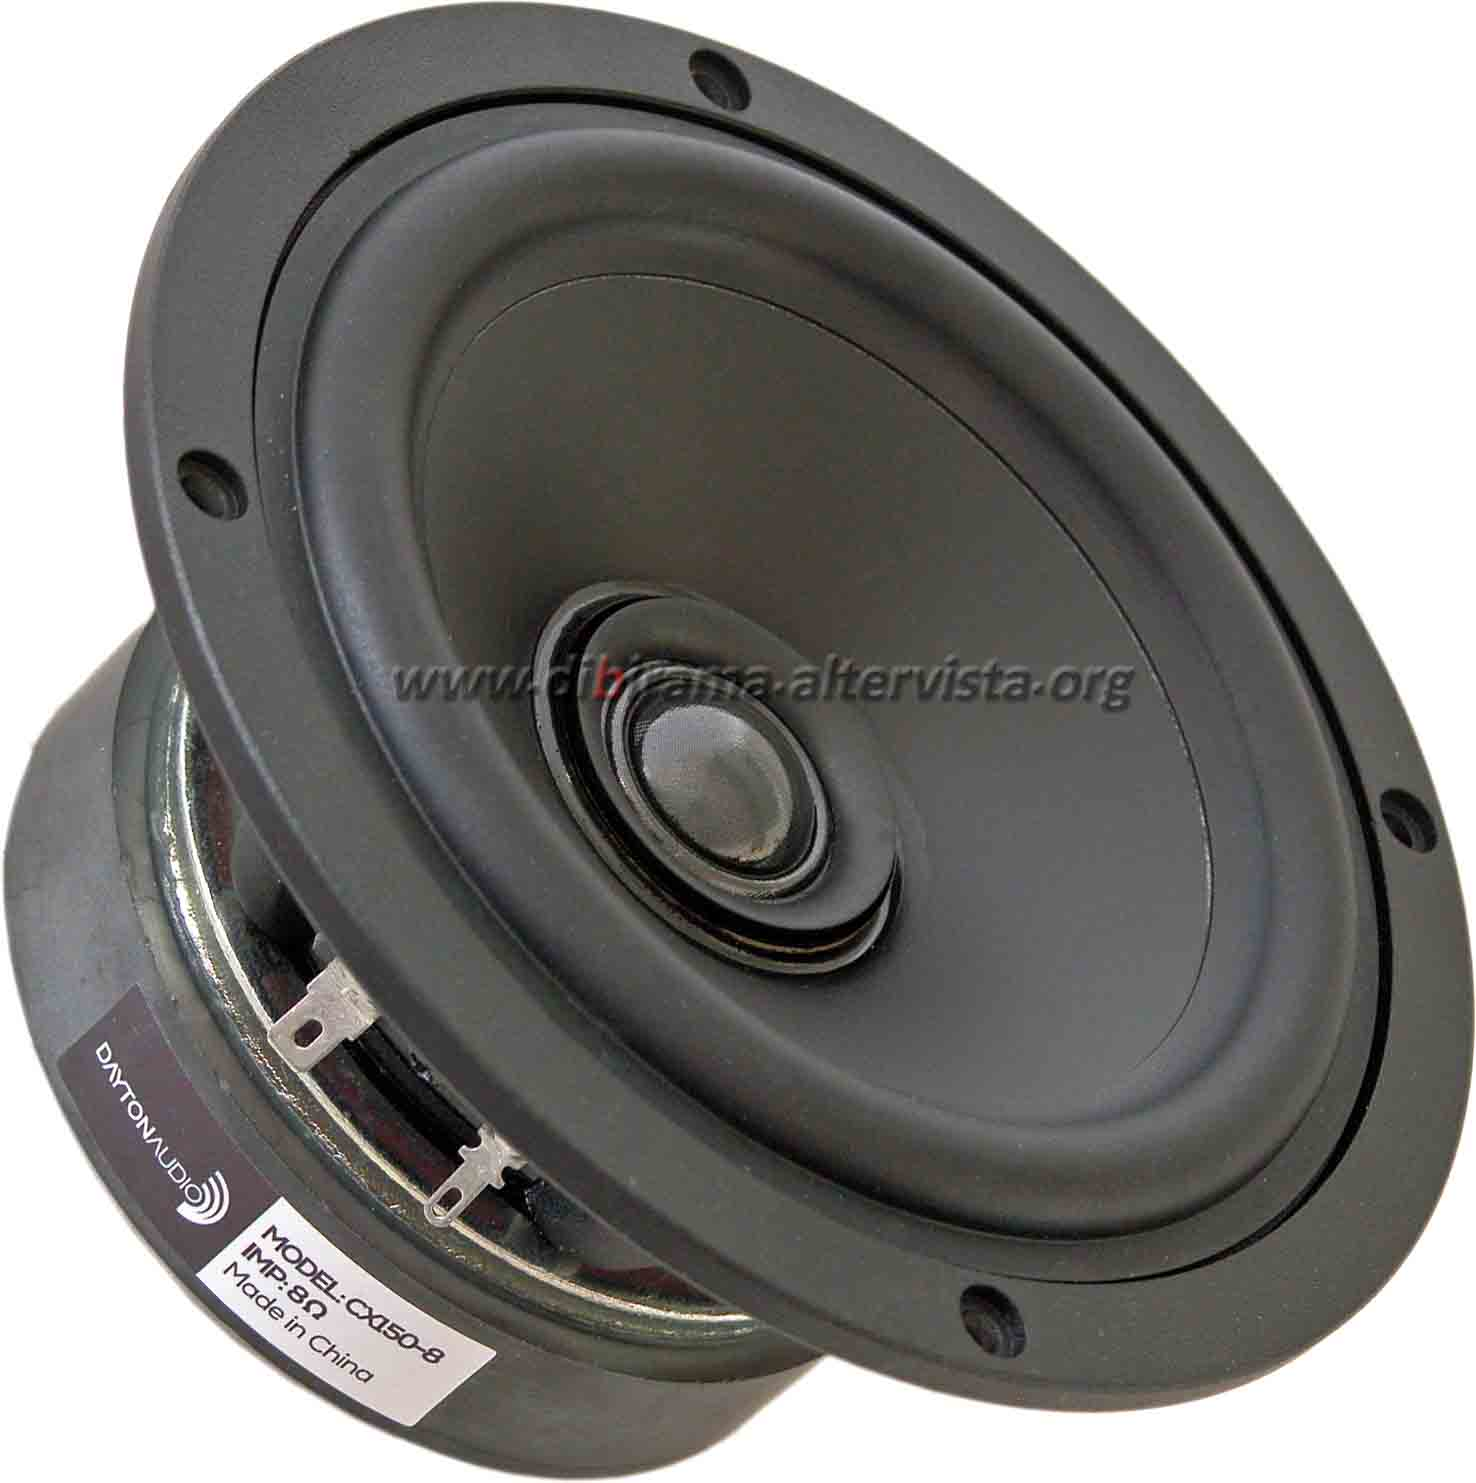 dayton-audio-cx150-8-coassiale-5-1-4-1-8-ohm-160-60-wmax